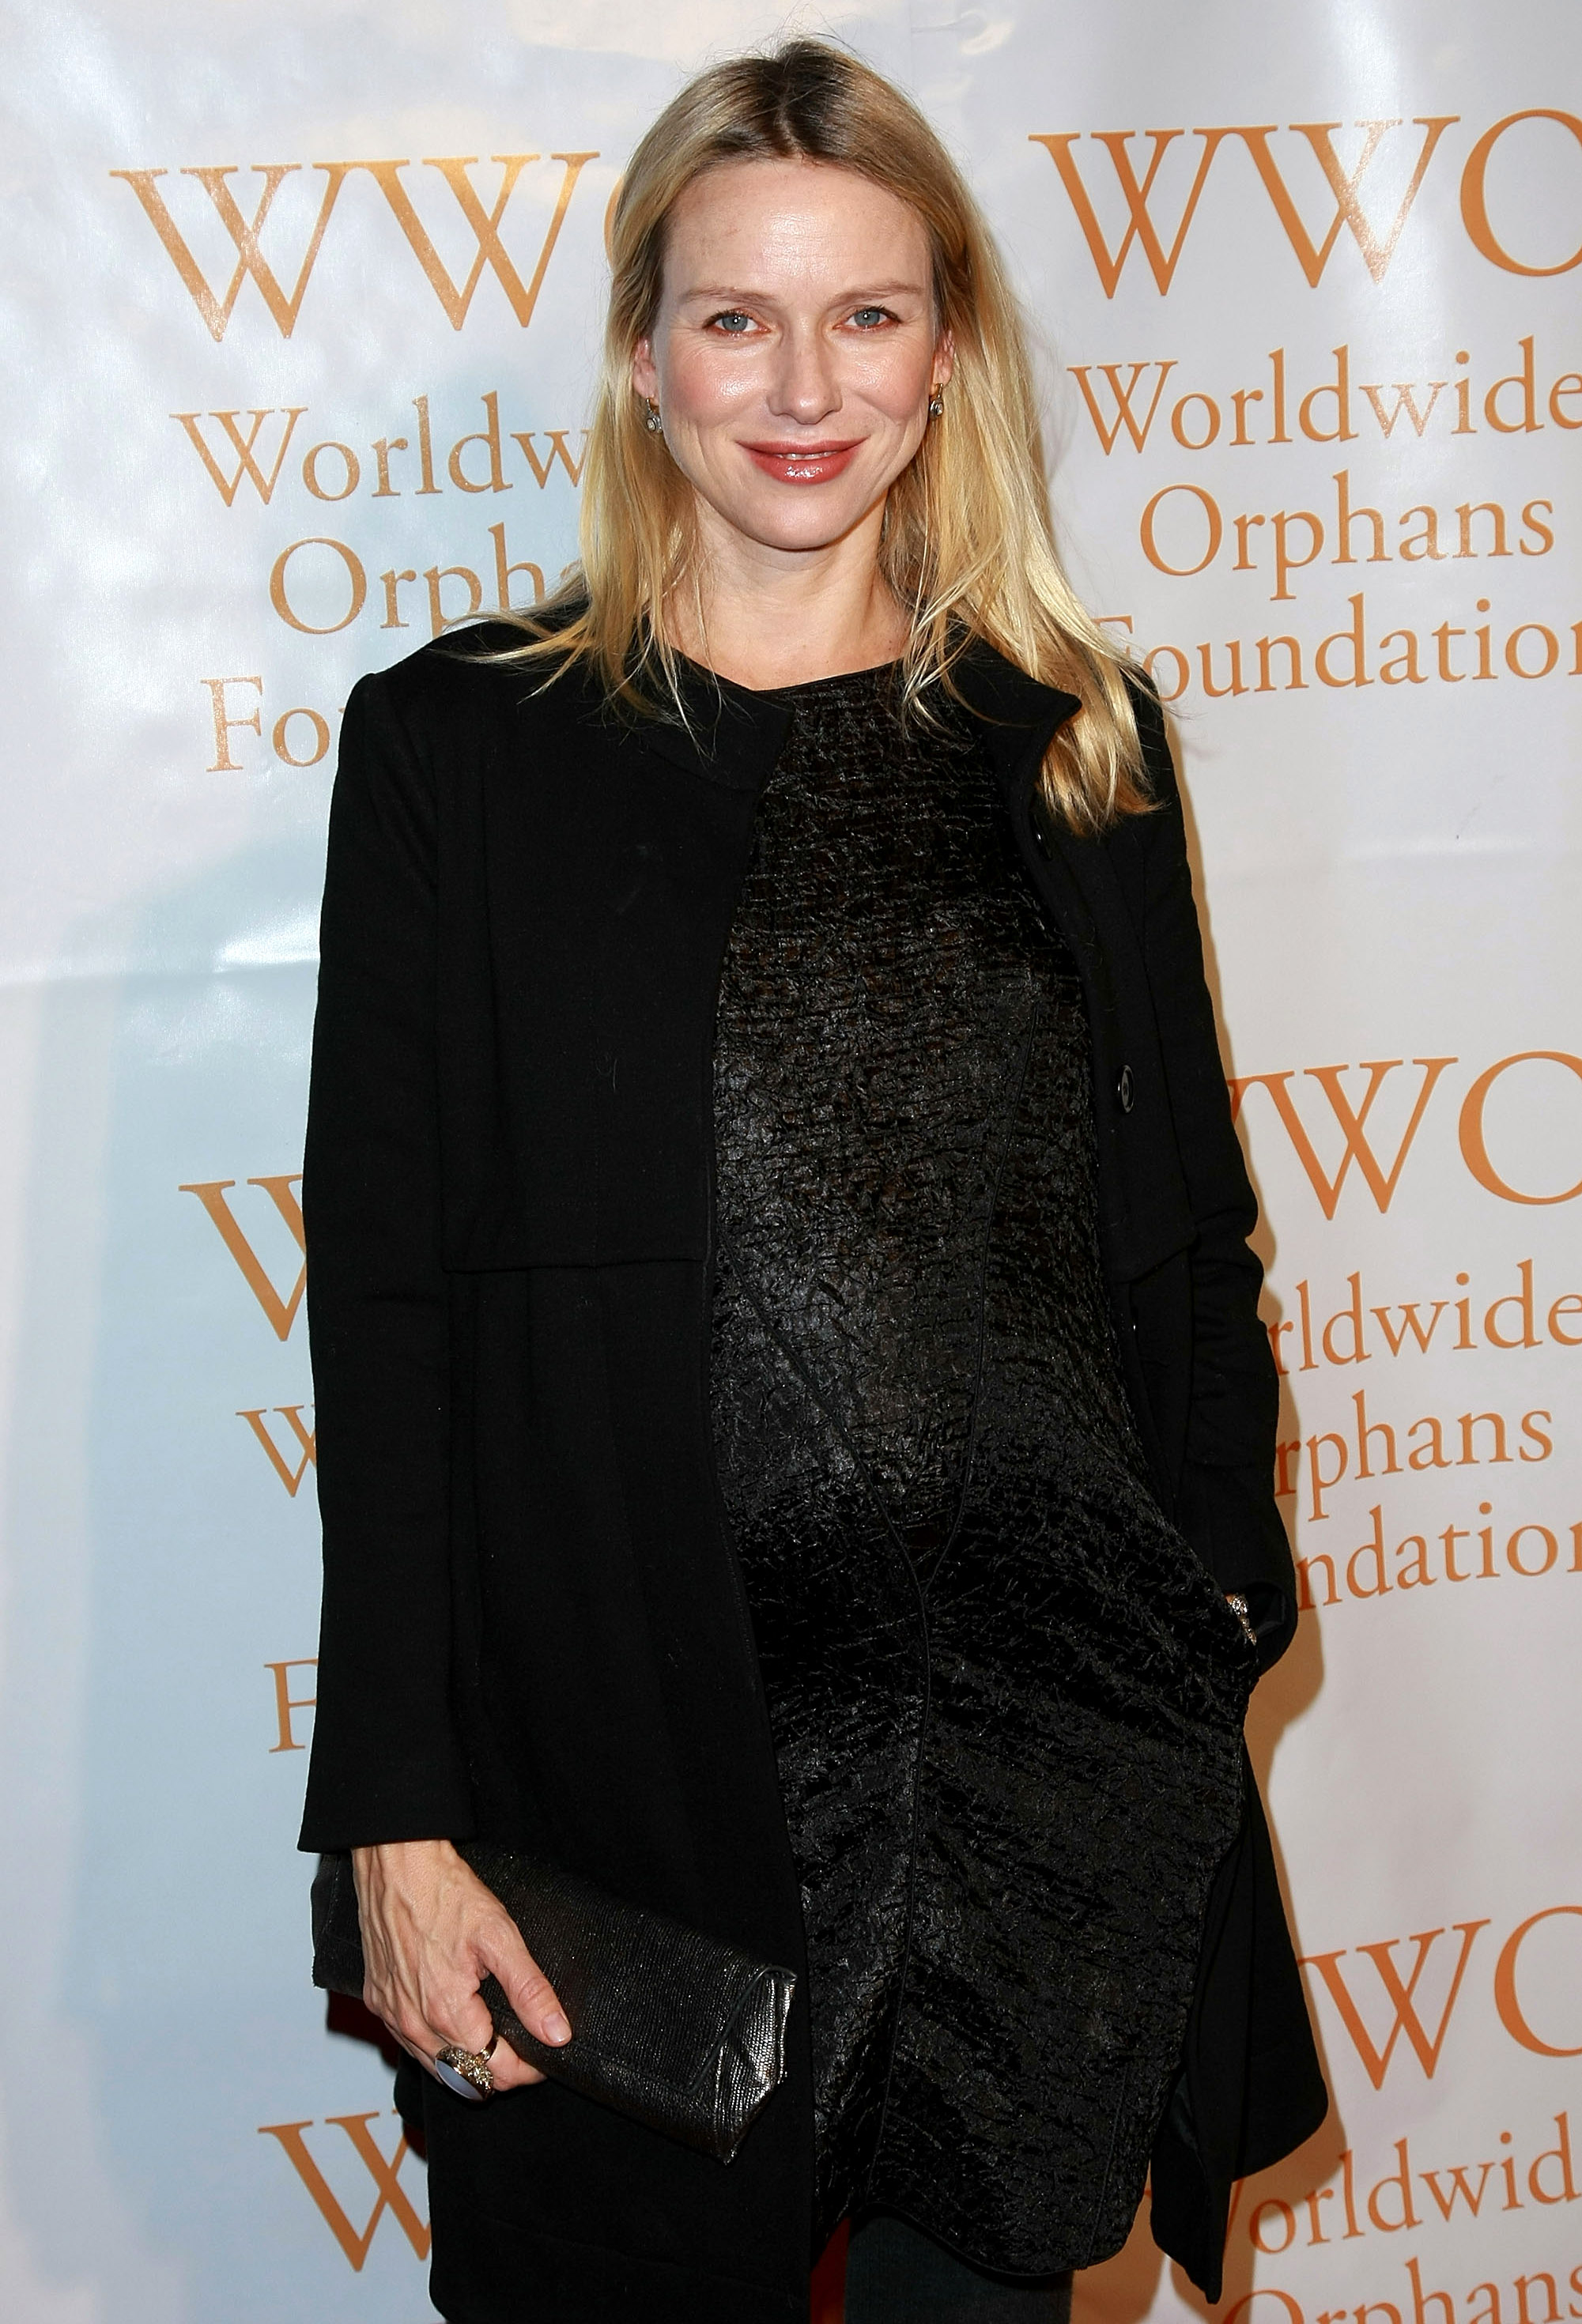 82049_Celebutopia-Naomi_Watts-4th_Annual_Worldwide_Orphans_Foundation_benefit_gala-05_122_91lo.jpg